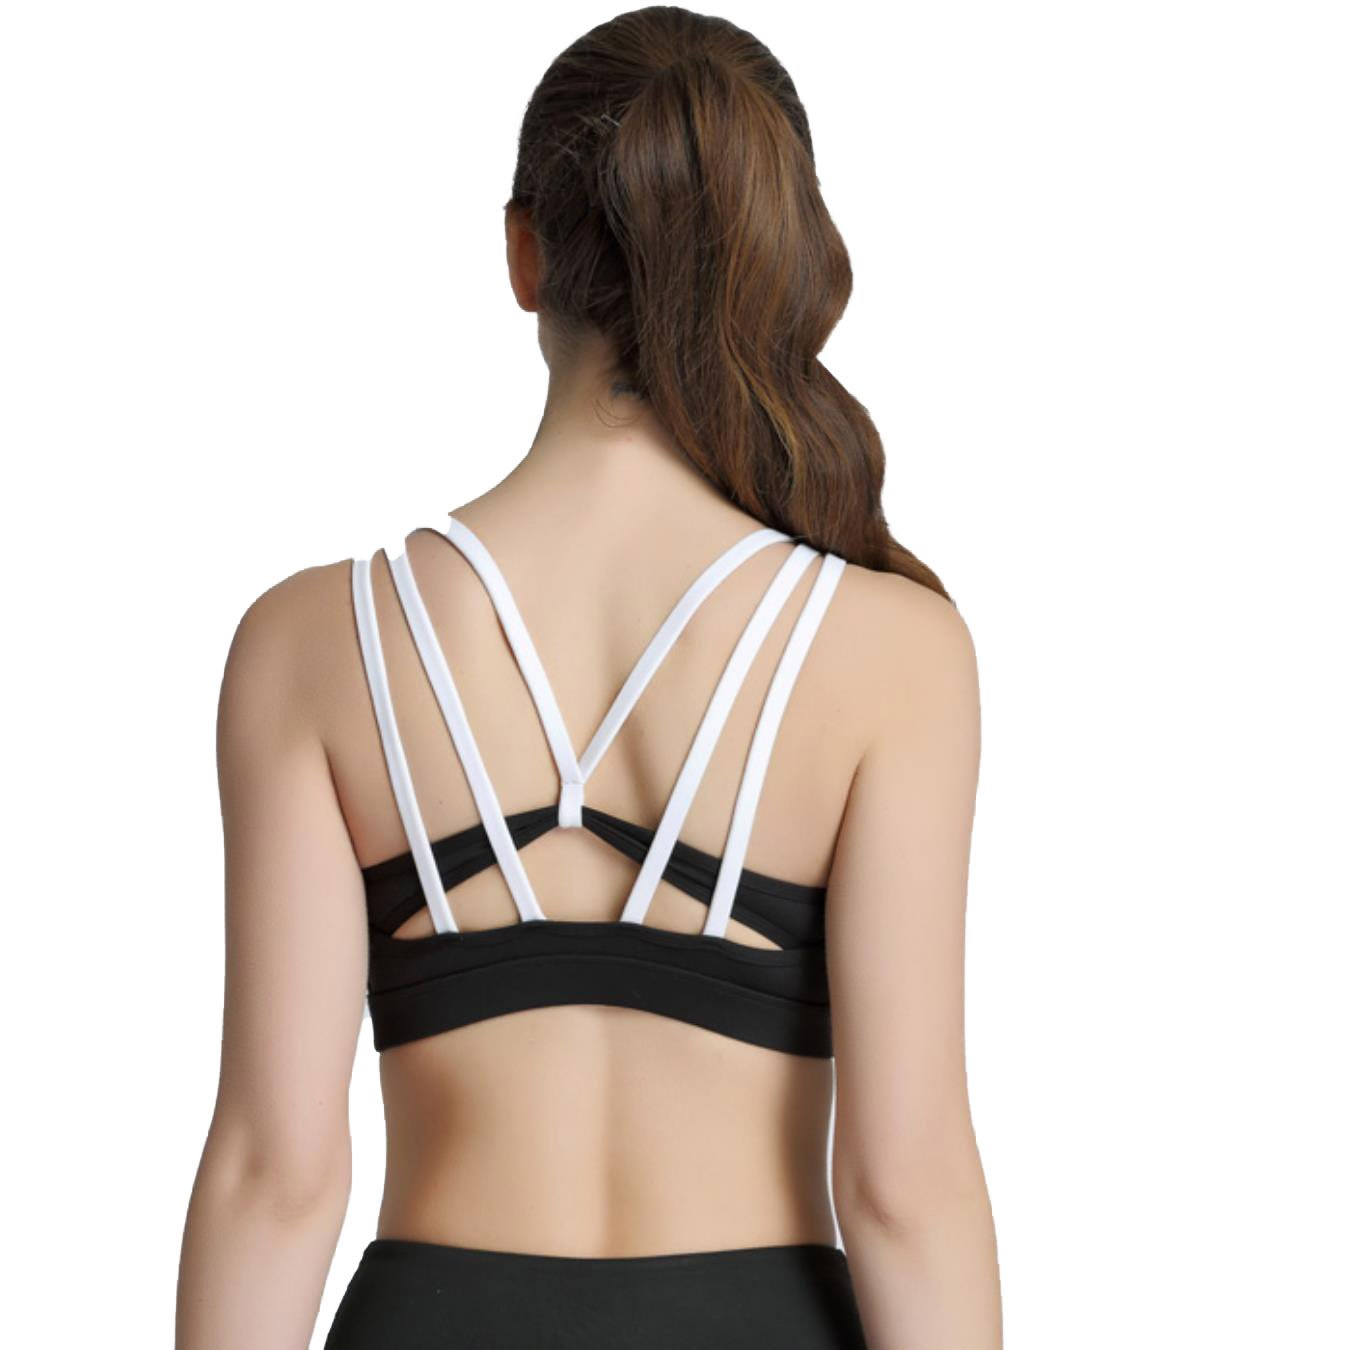 80b51947ea NEMEOPEN Women Sexy Backless Sports Bra Push up Underwear Fitness Yoga  Shirt Quick Dry Workout Underwear at Amazon Women s Clothing store